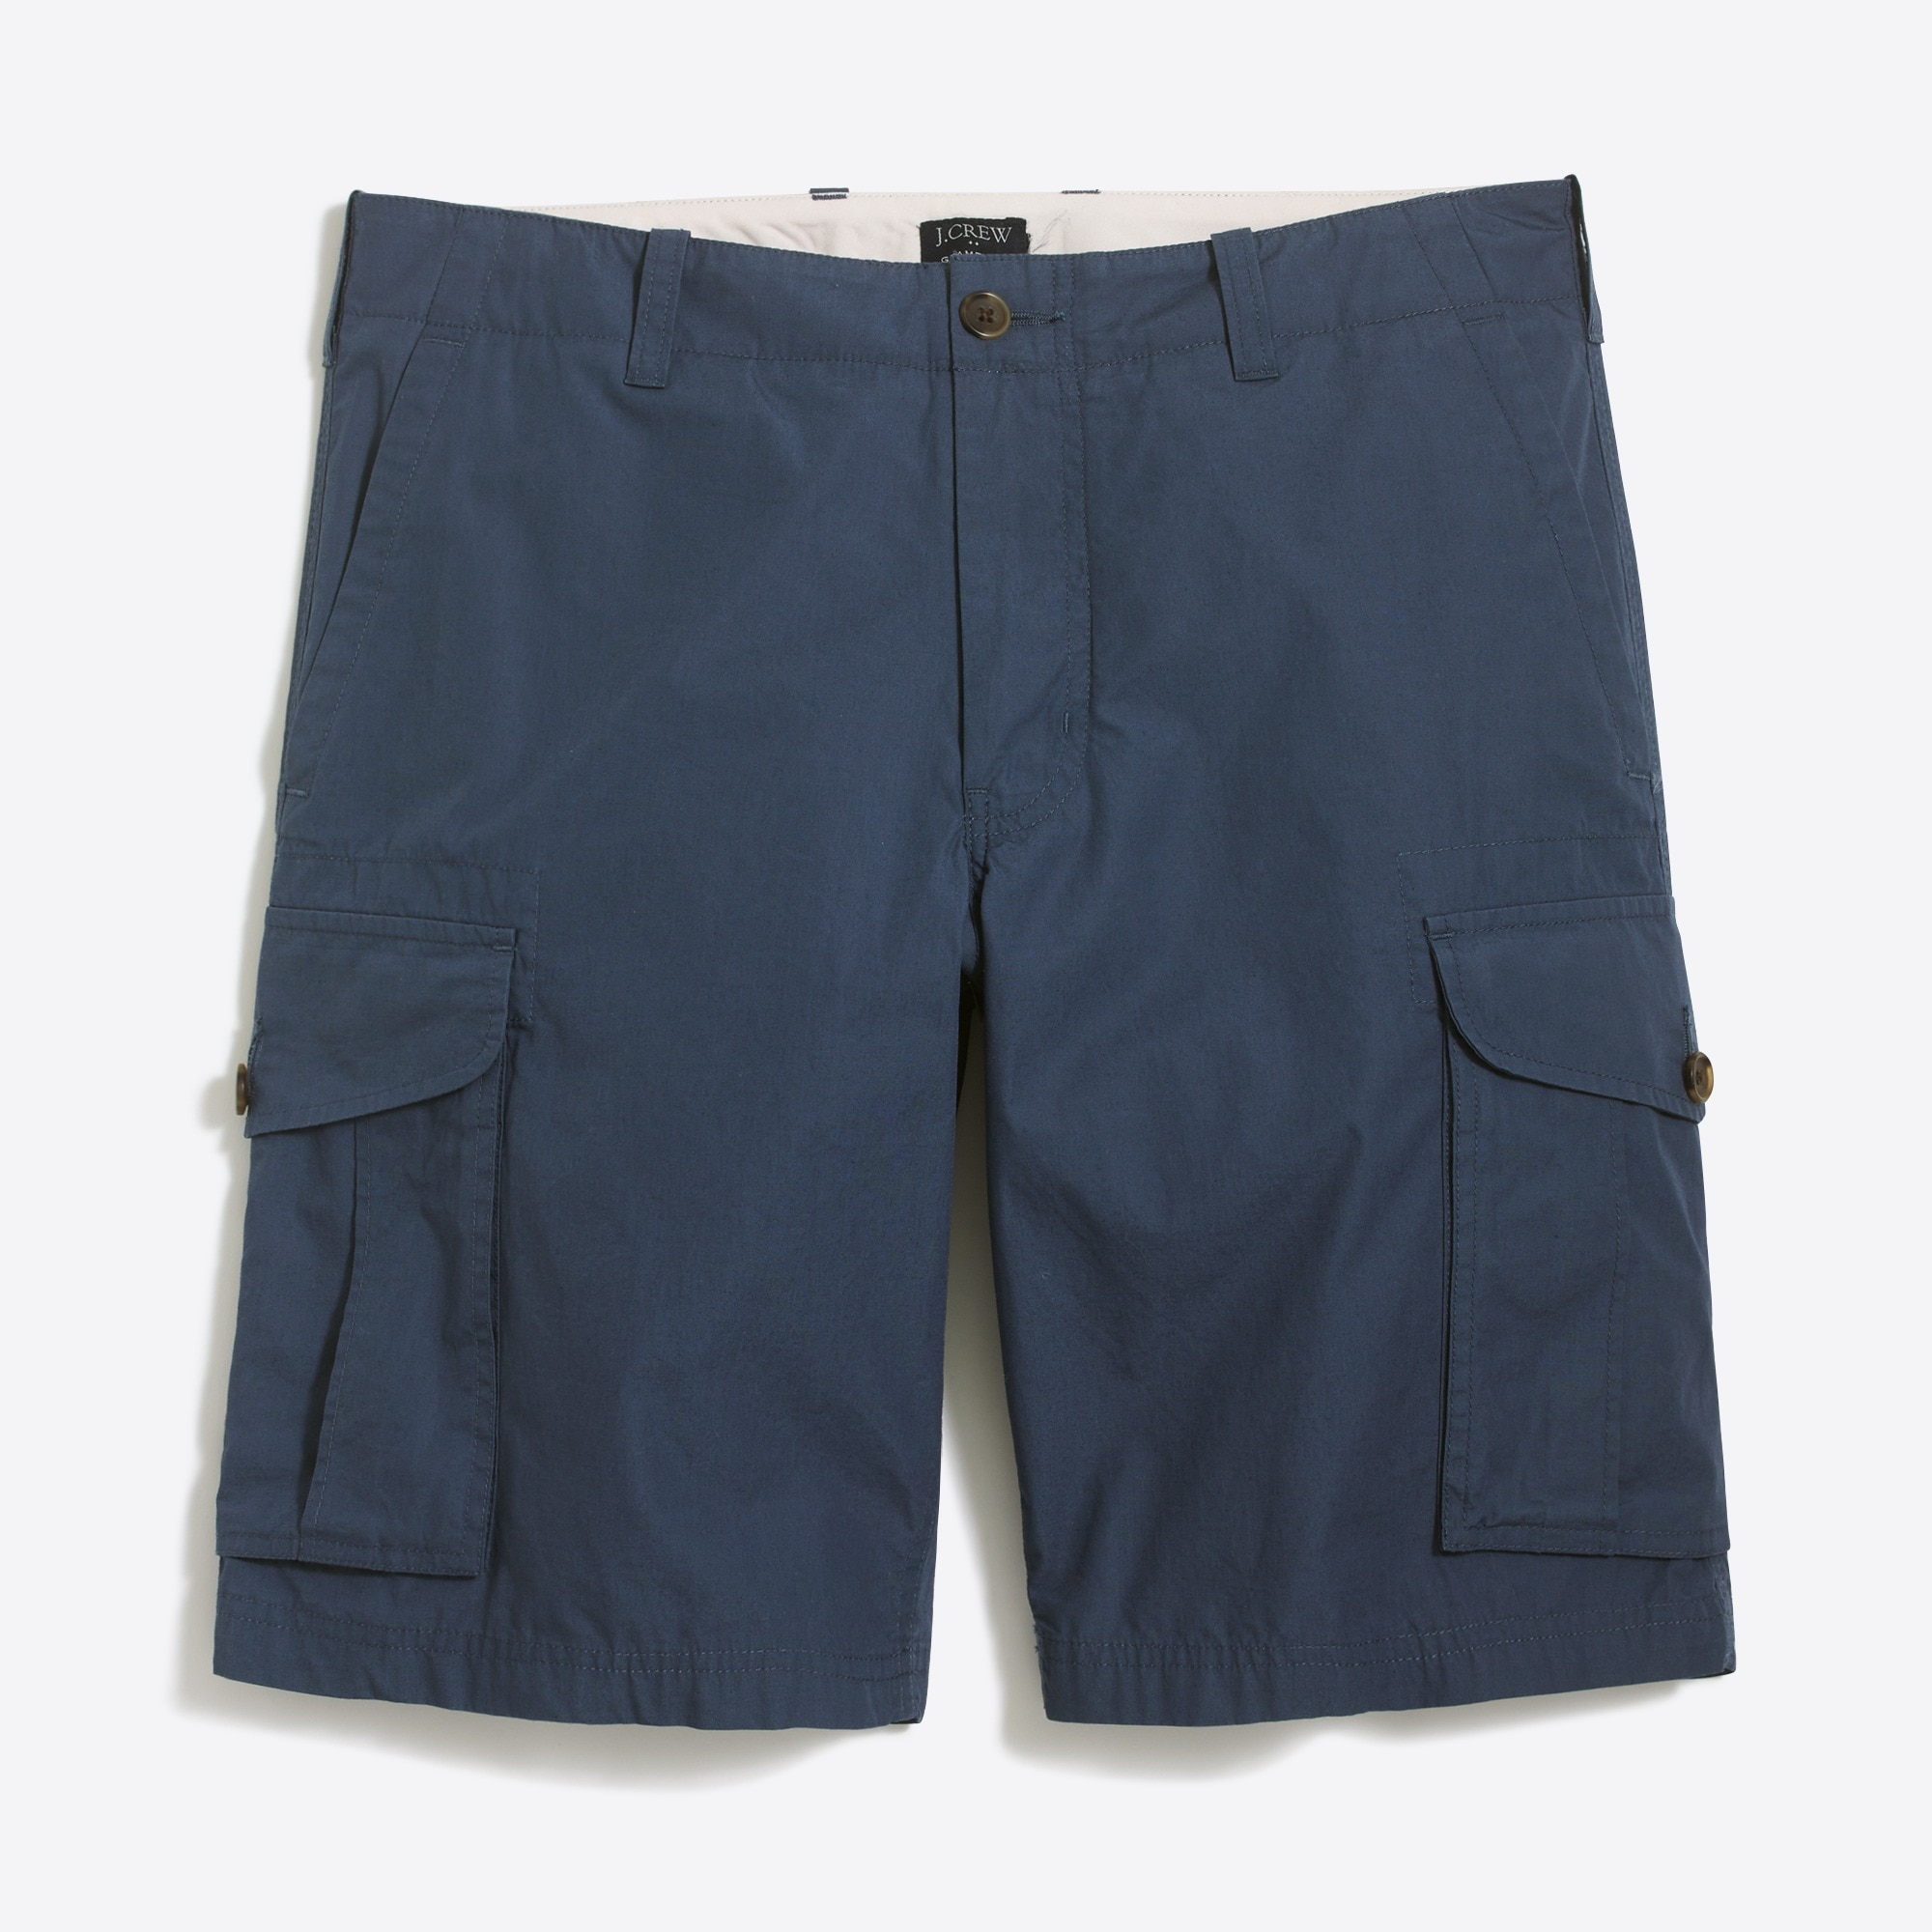 "Image 2 for 9"" Gramercy cargo short"